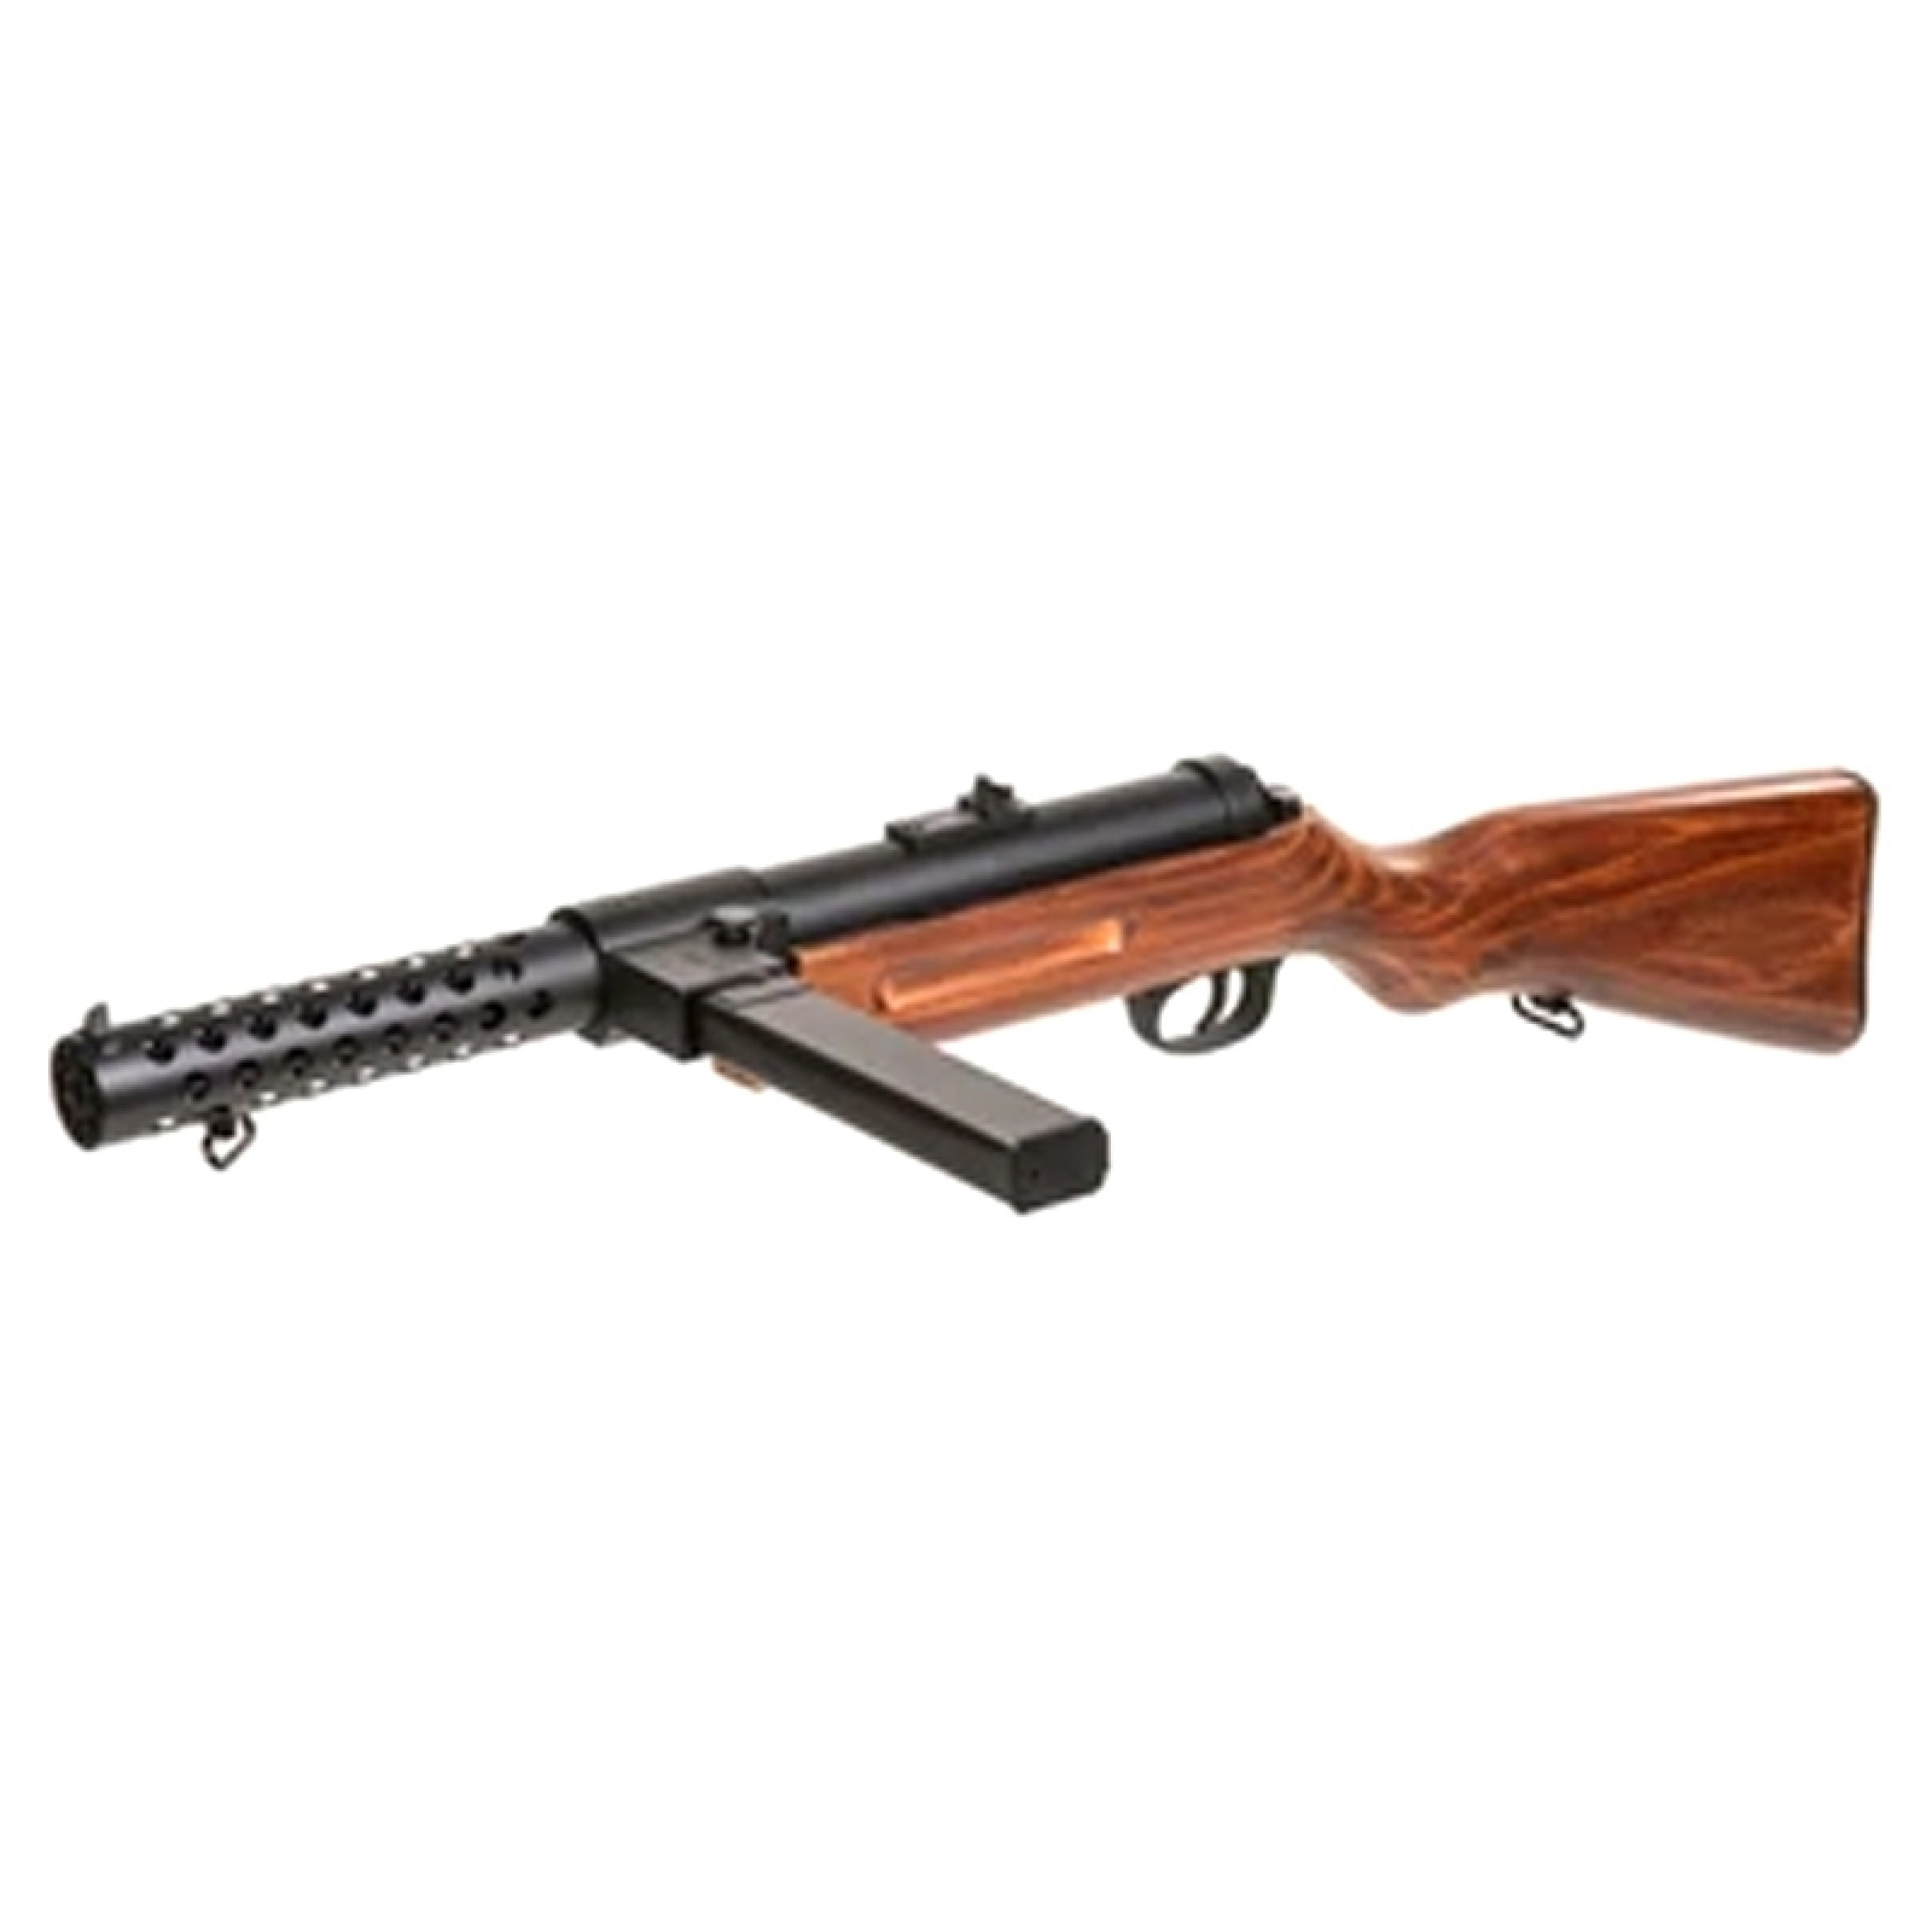 Snow Wolf Bergmann MP-18 AEG SMG (Metal - Real Wood Stock - SW-021 - SEMI ONLY/1.5 JOULE)